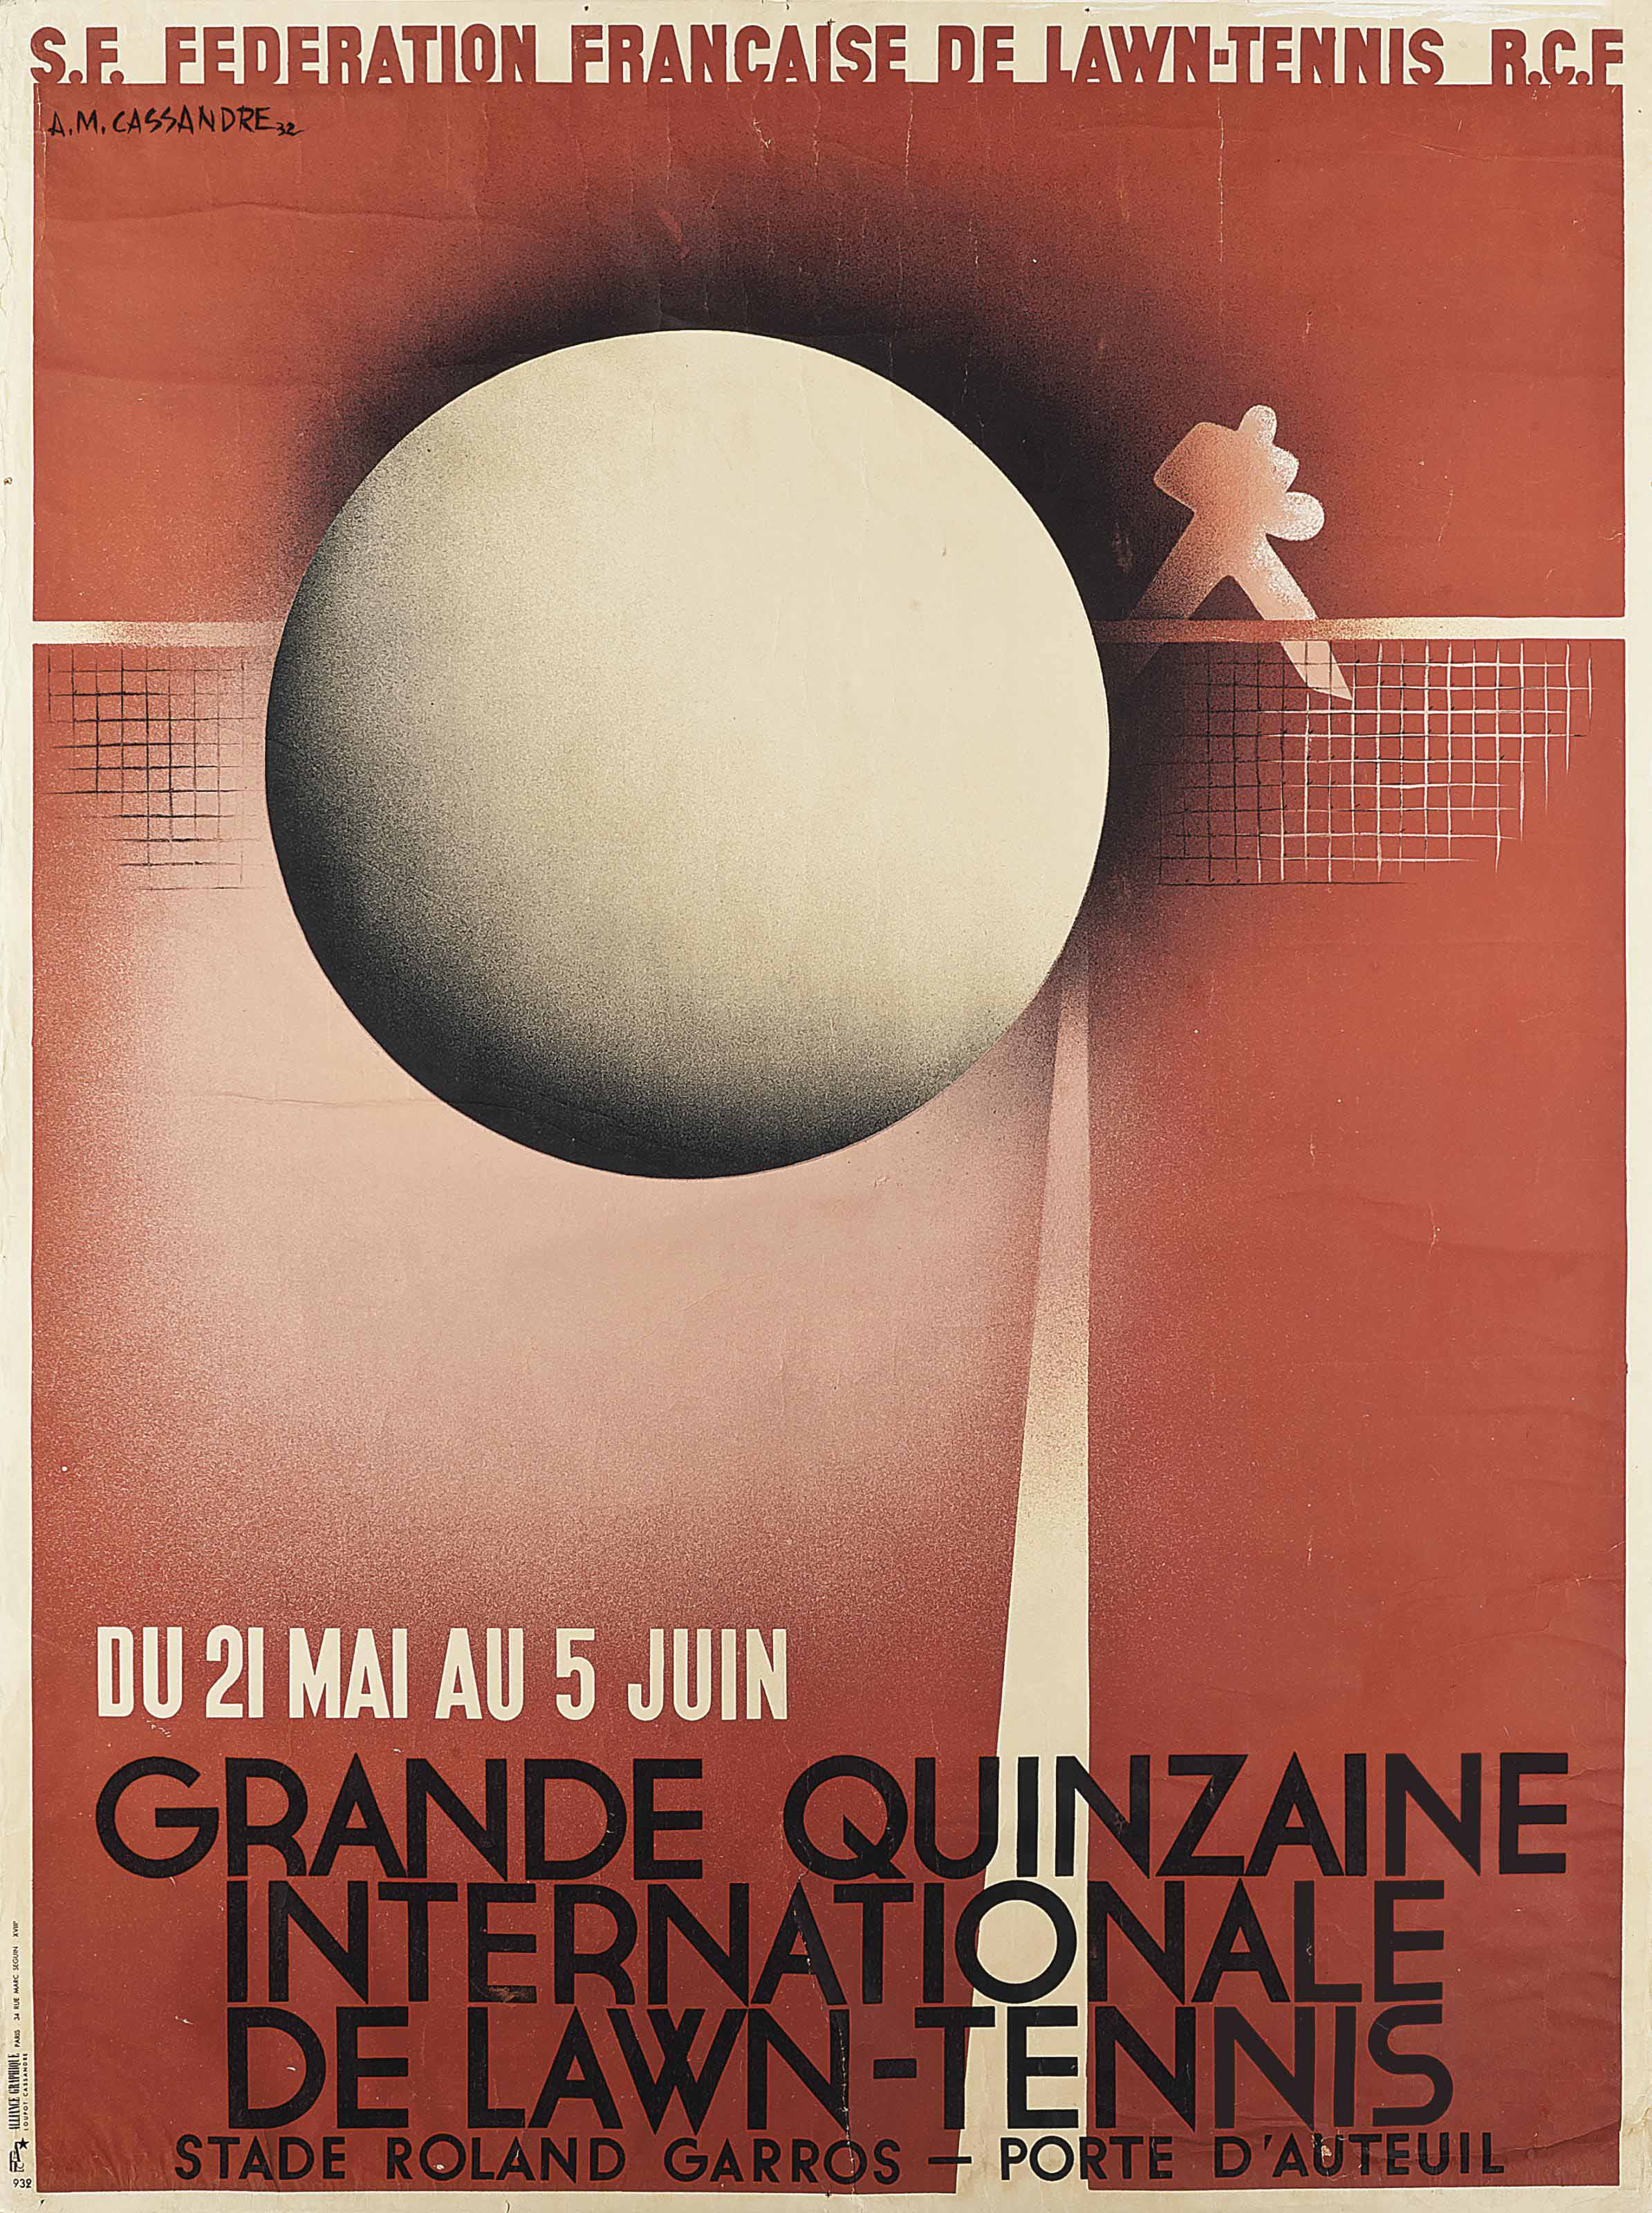 GRANDE QUINZAINE INTERNATIONALE DE LAWN-TENNIS